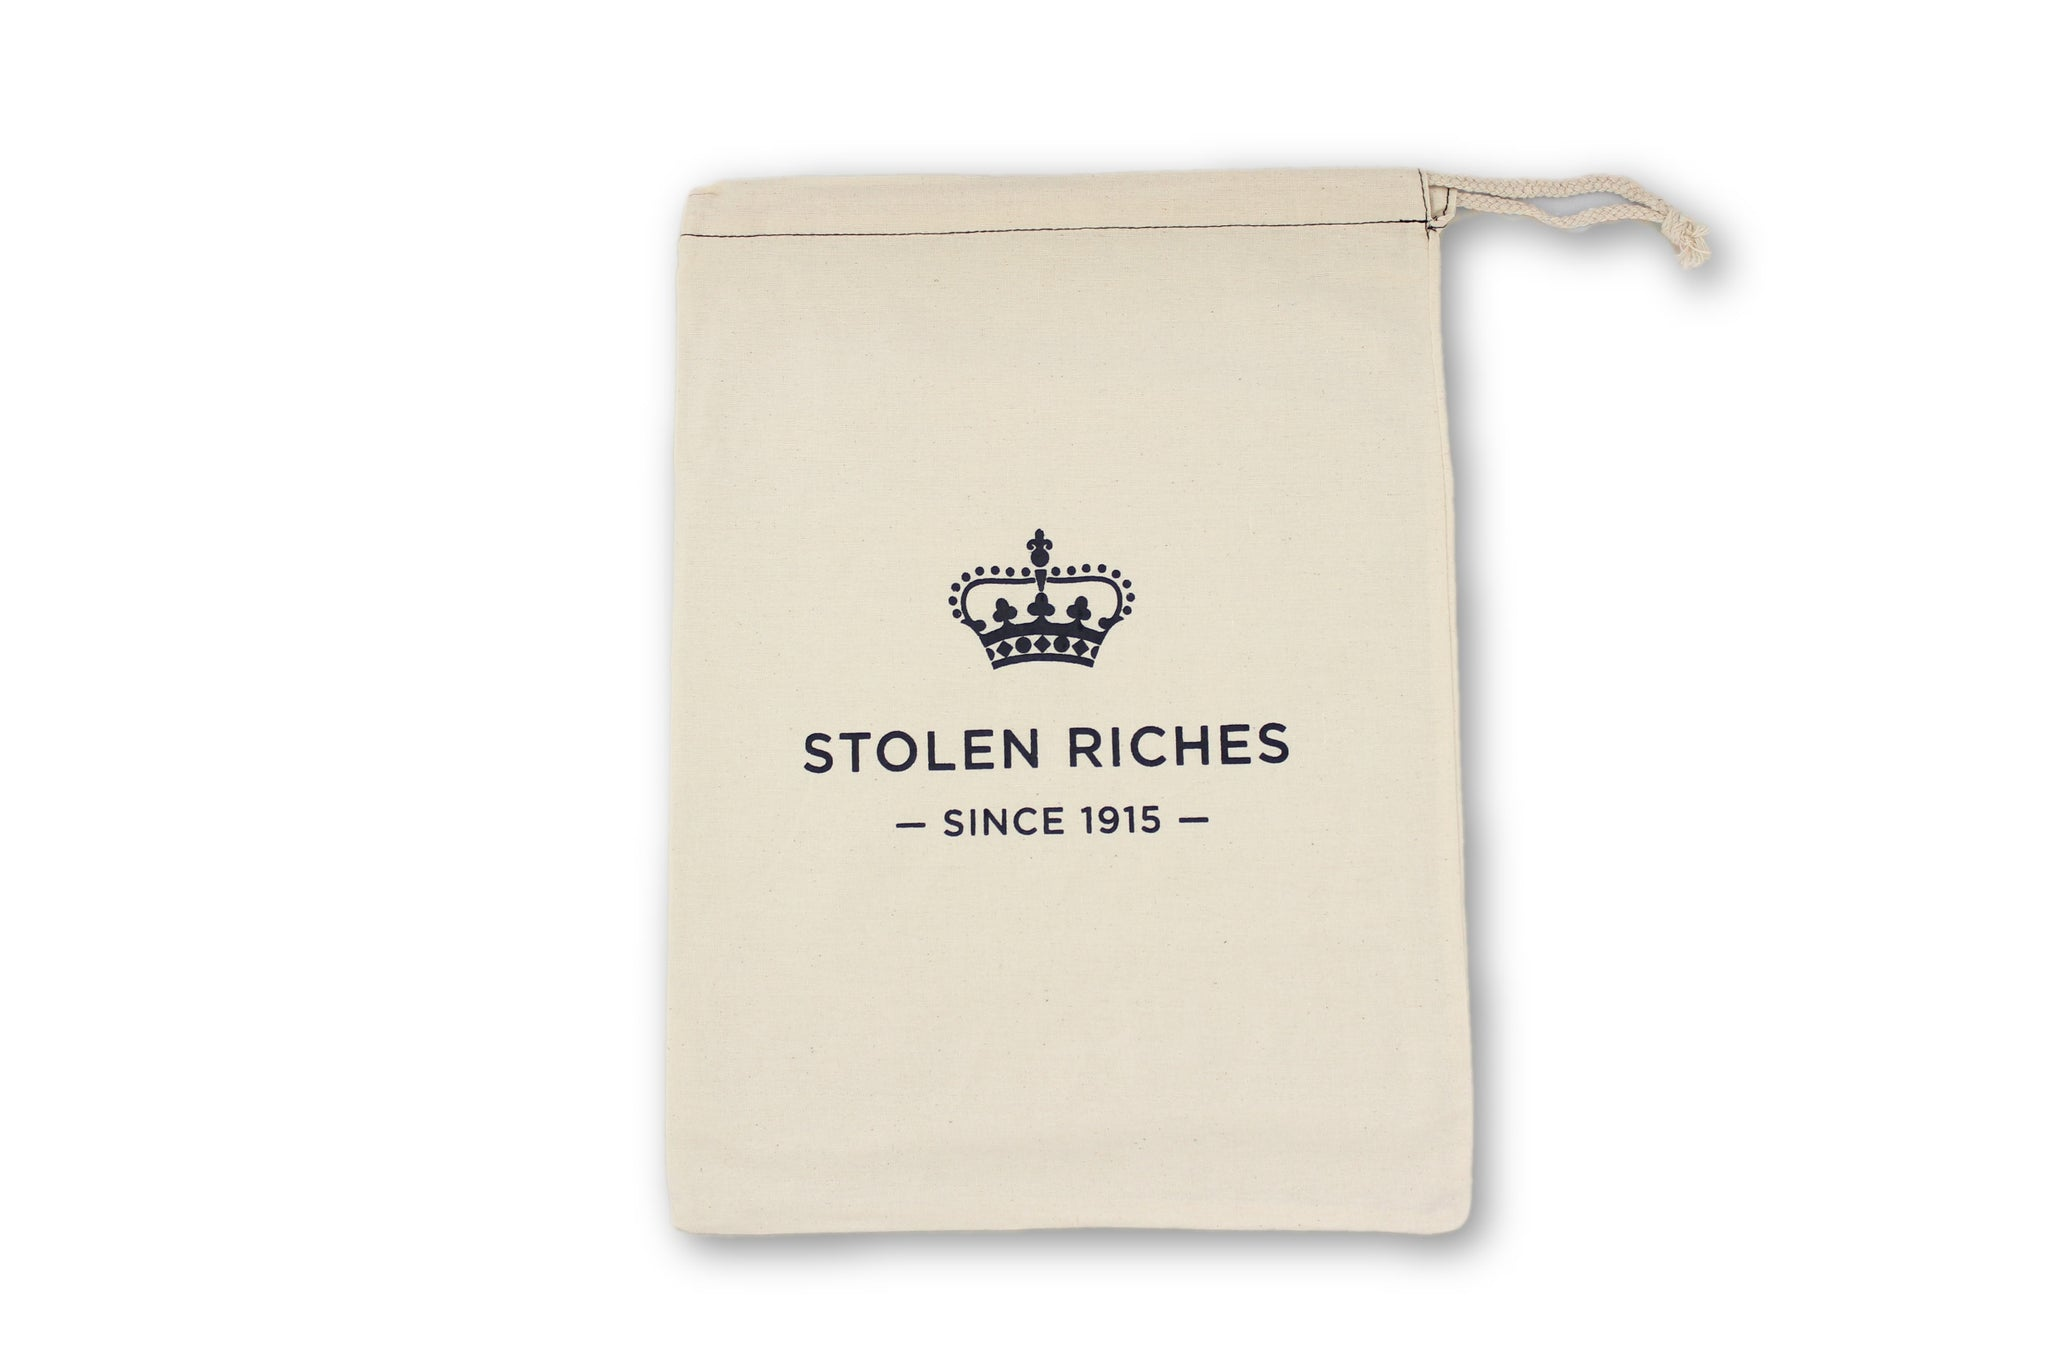 Keep it Clean - Stolen Riches / CA